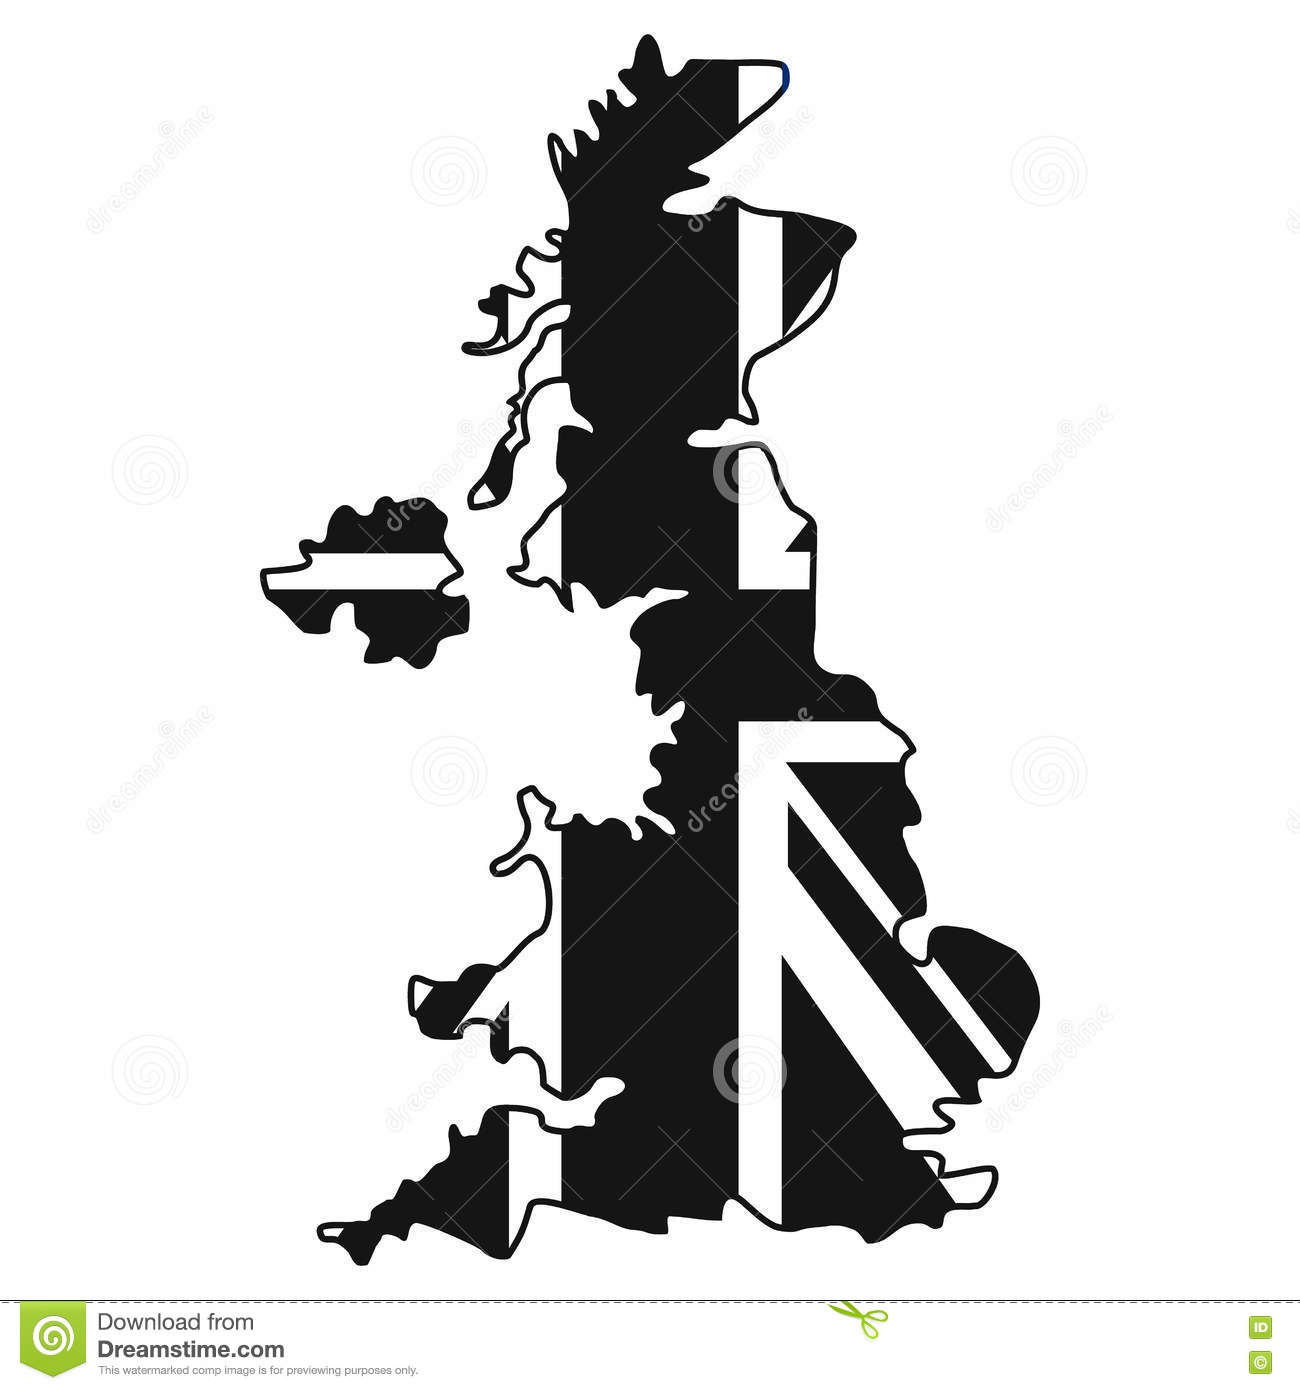 Vector Map Flag Of The UK Royalty Free Stock Photos - Image: 4213978